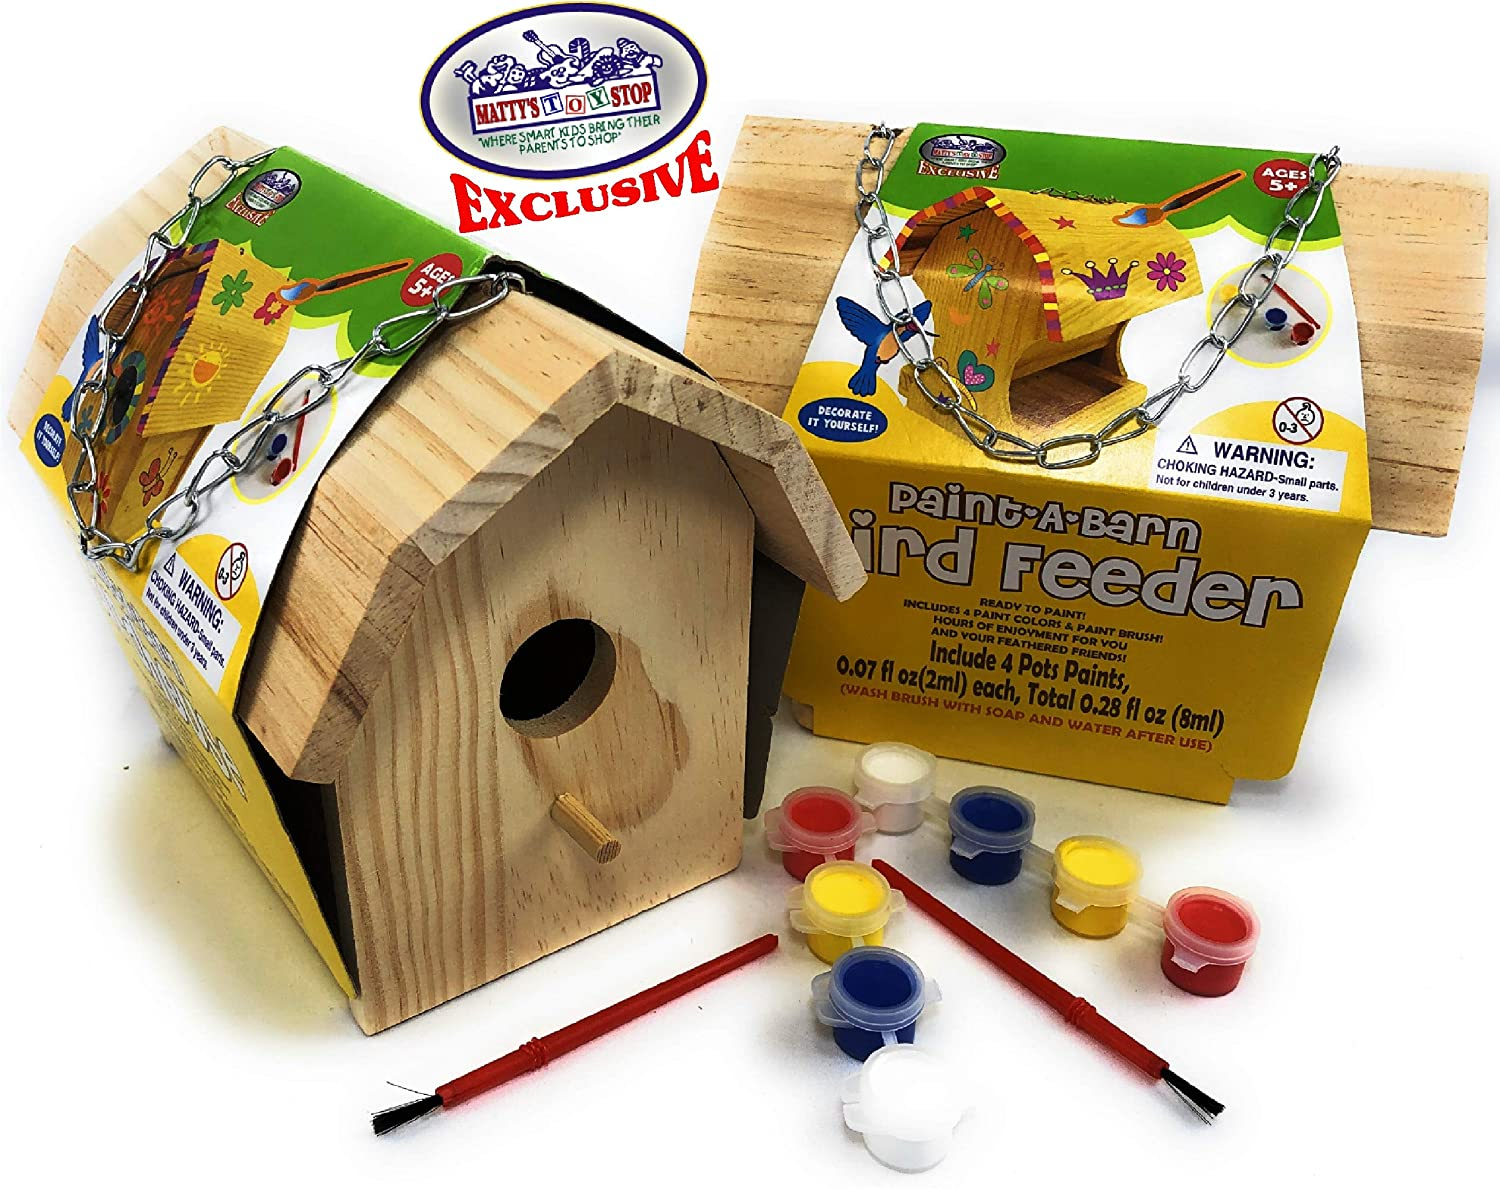 Gift Set Bundle 2 Pack Homeware Includes Paints /& Brushes Mattys Toy Stop Paint-A-Barn Wooden Birdhouse /& Bird Feeder